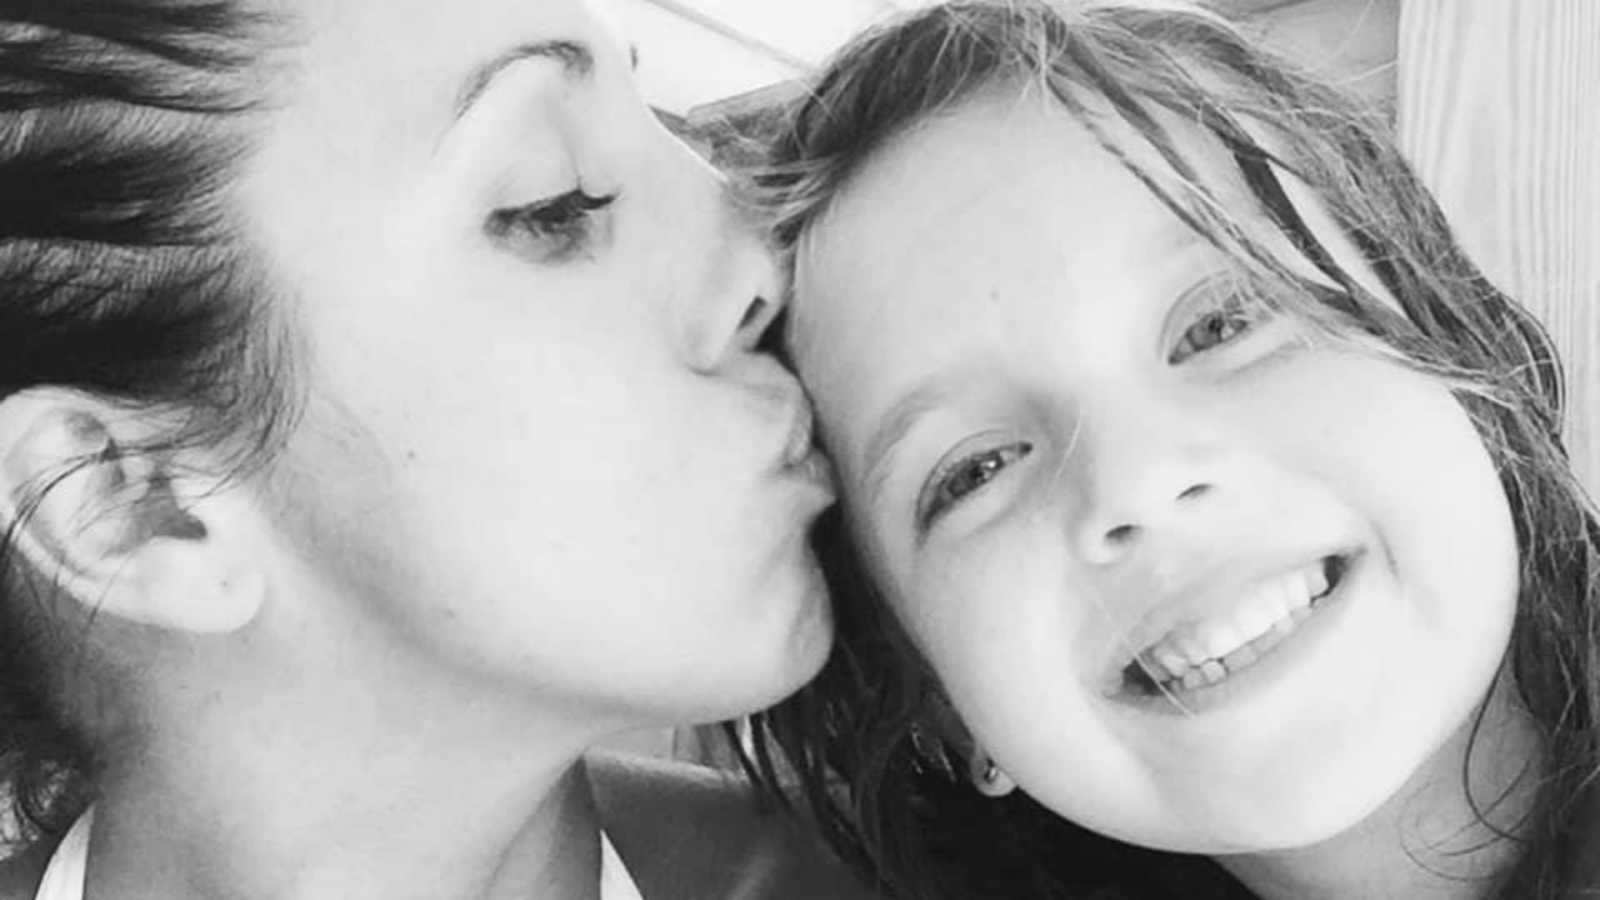 Mom kisses her daughter's forehead while she smiles